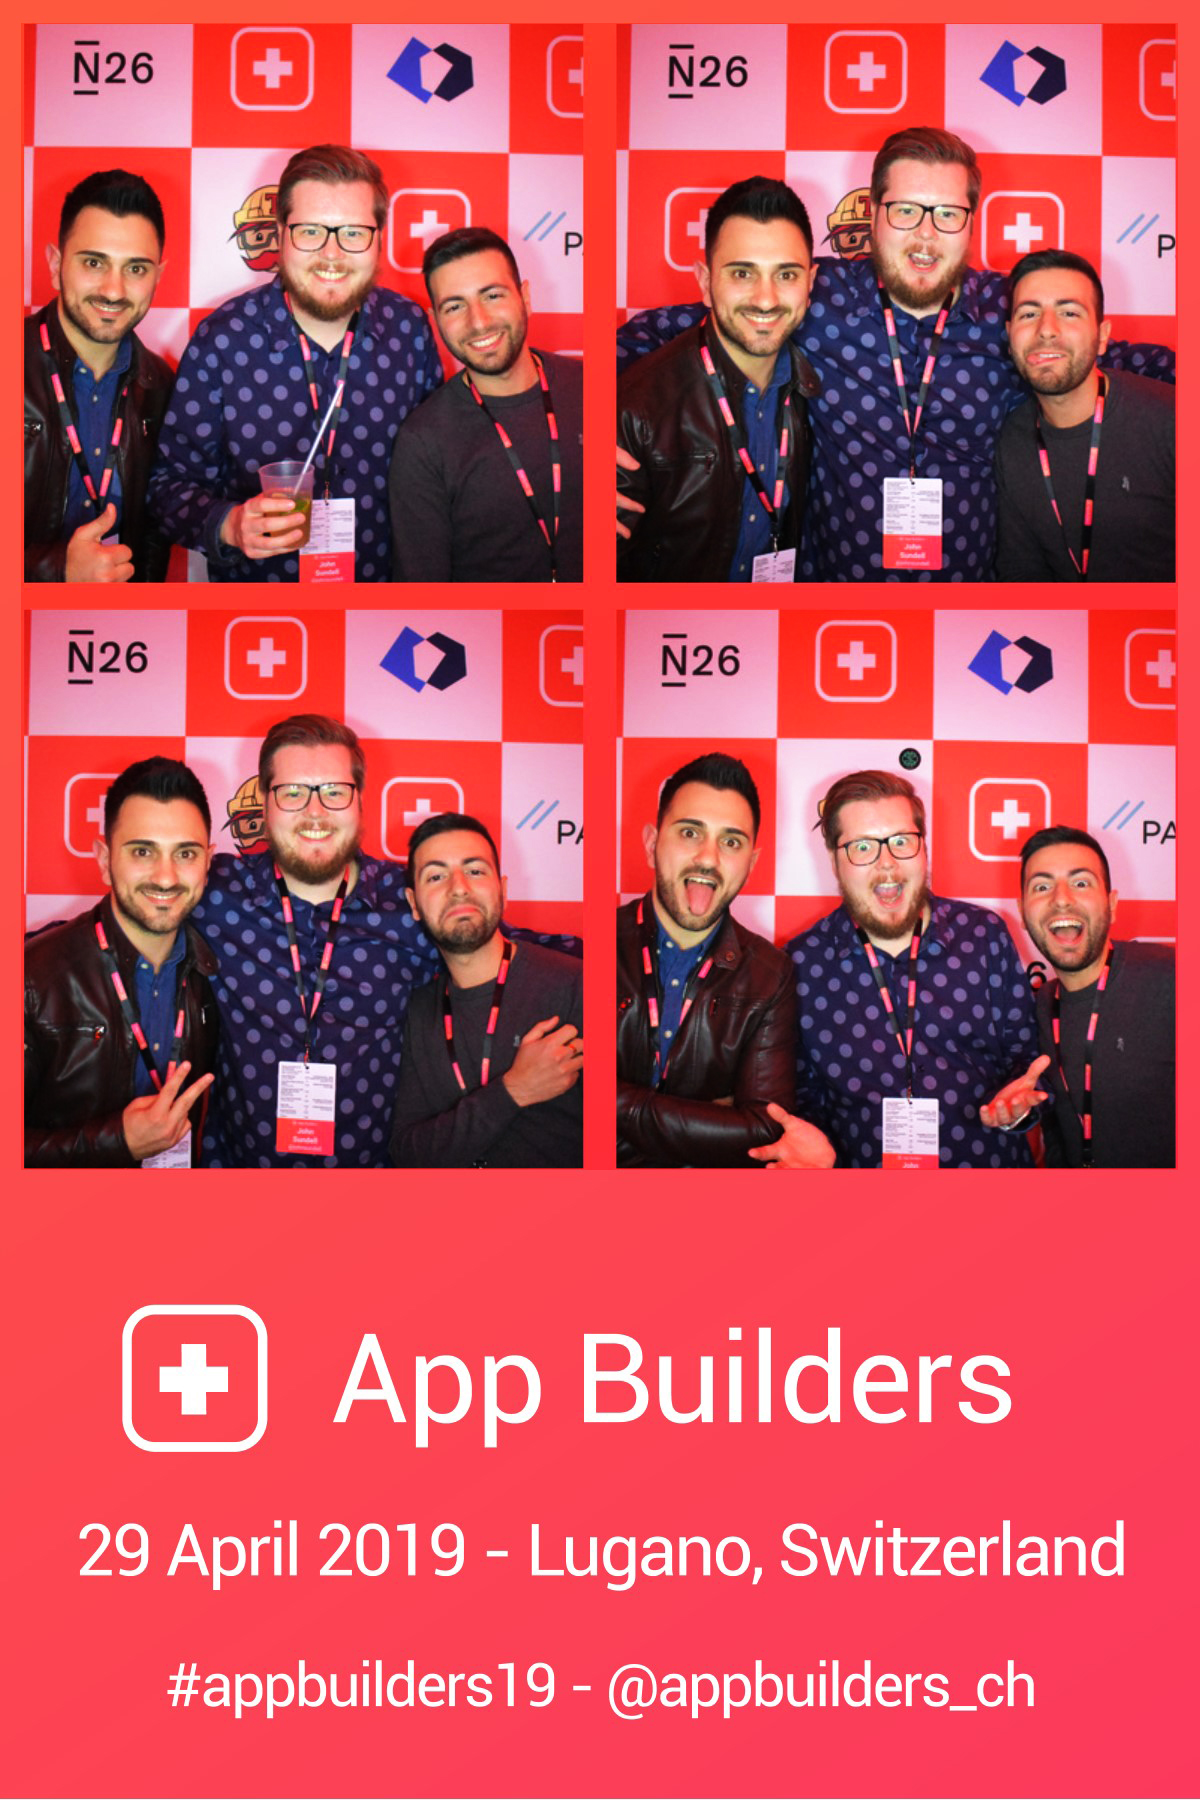 Overthebox App Builders 2019 Lugano